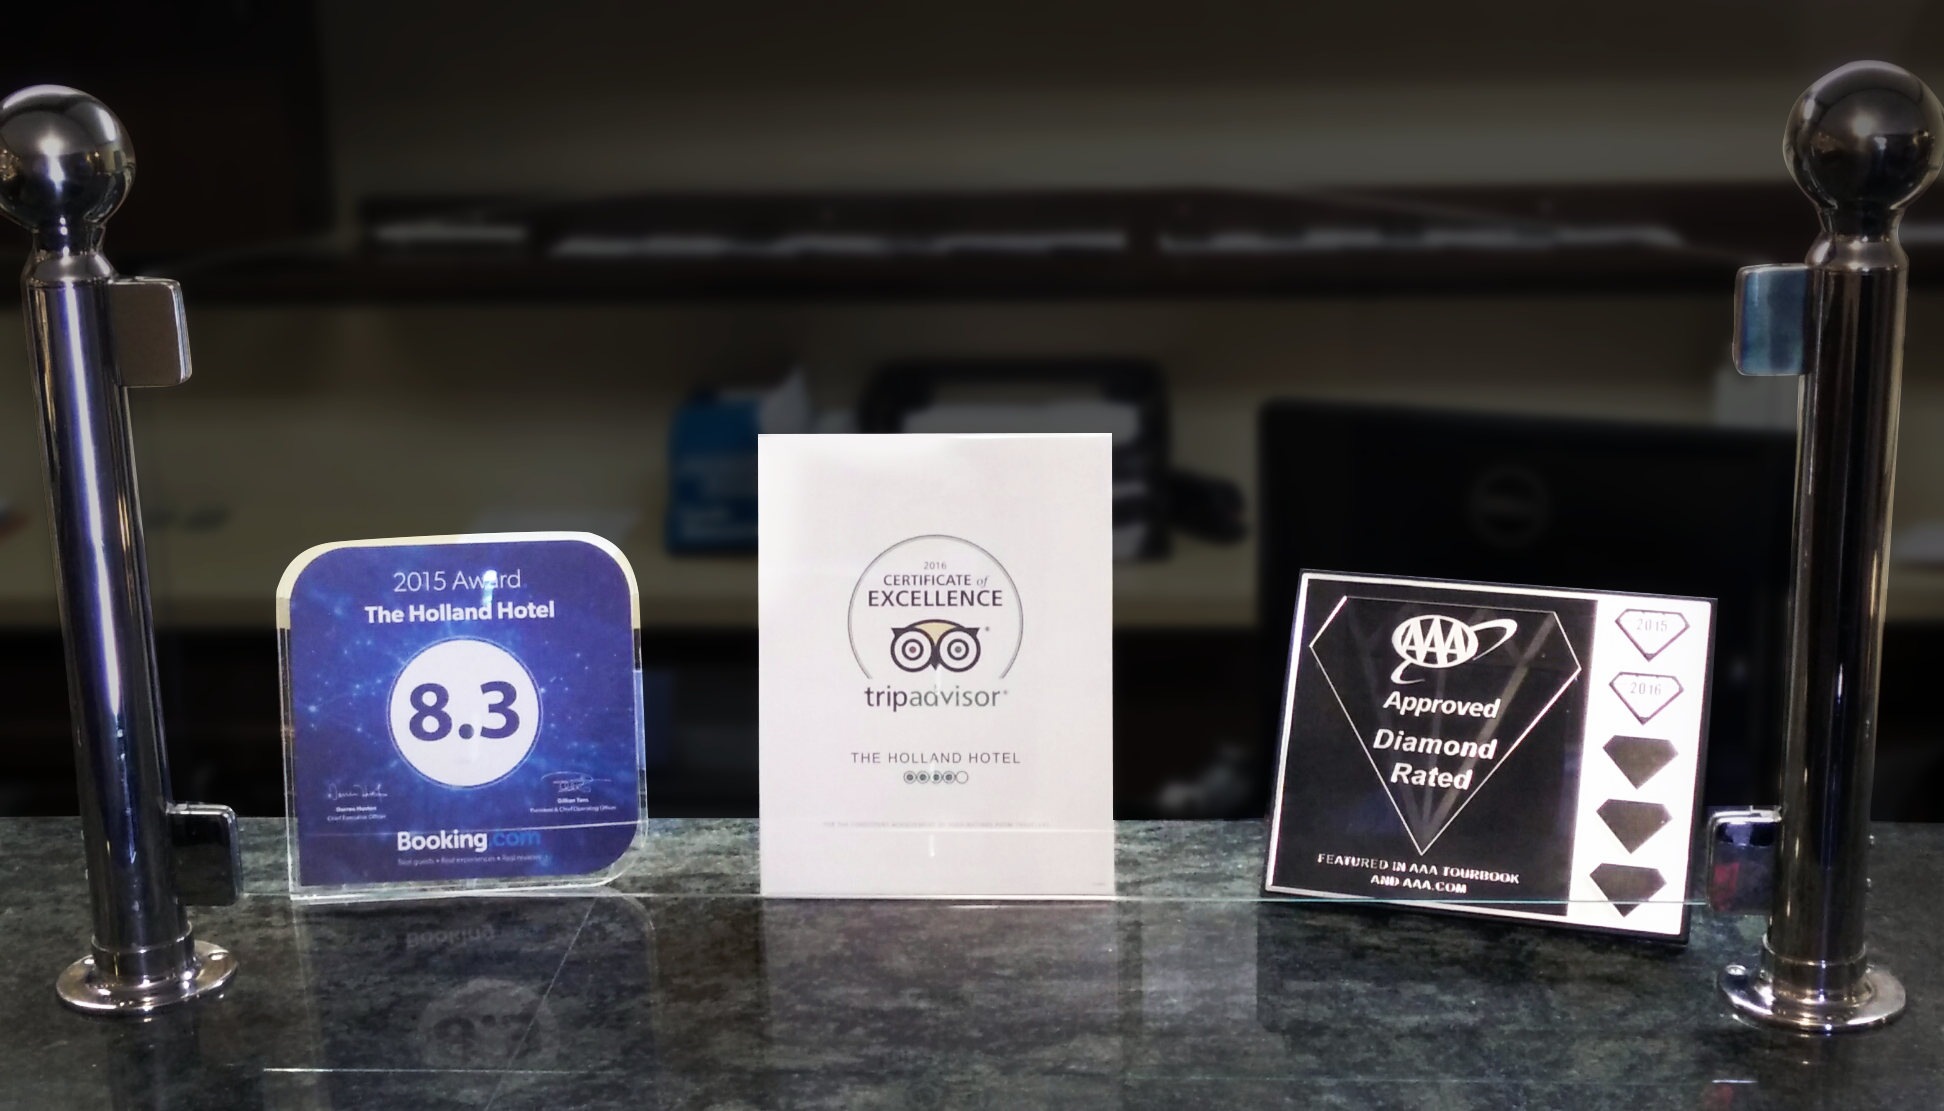 the holland hotel awards on desk from booking.com, TripAdvisor, and triple A